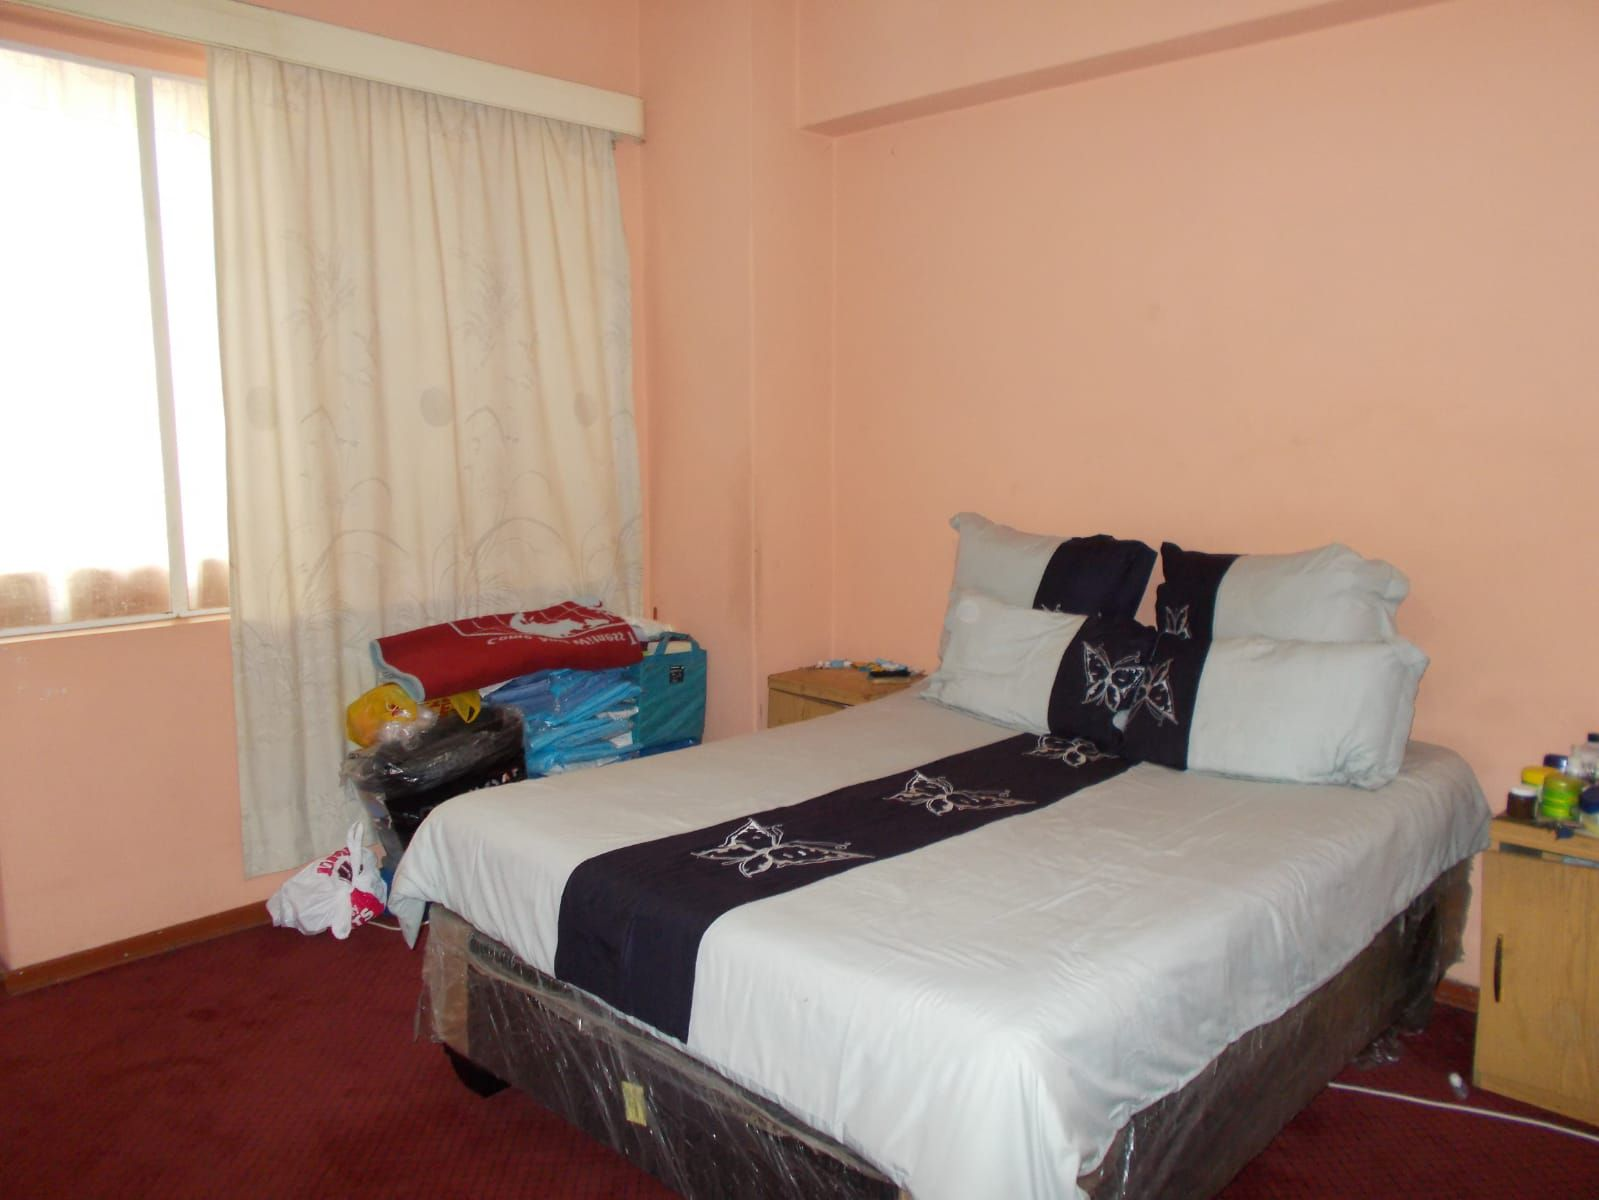 Apartment in Hillbrow - WhatsApp Image 2021-01-12 at 13.04.41 (1).jpeg